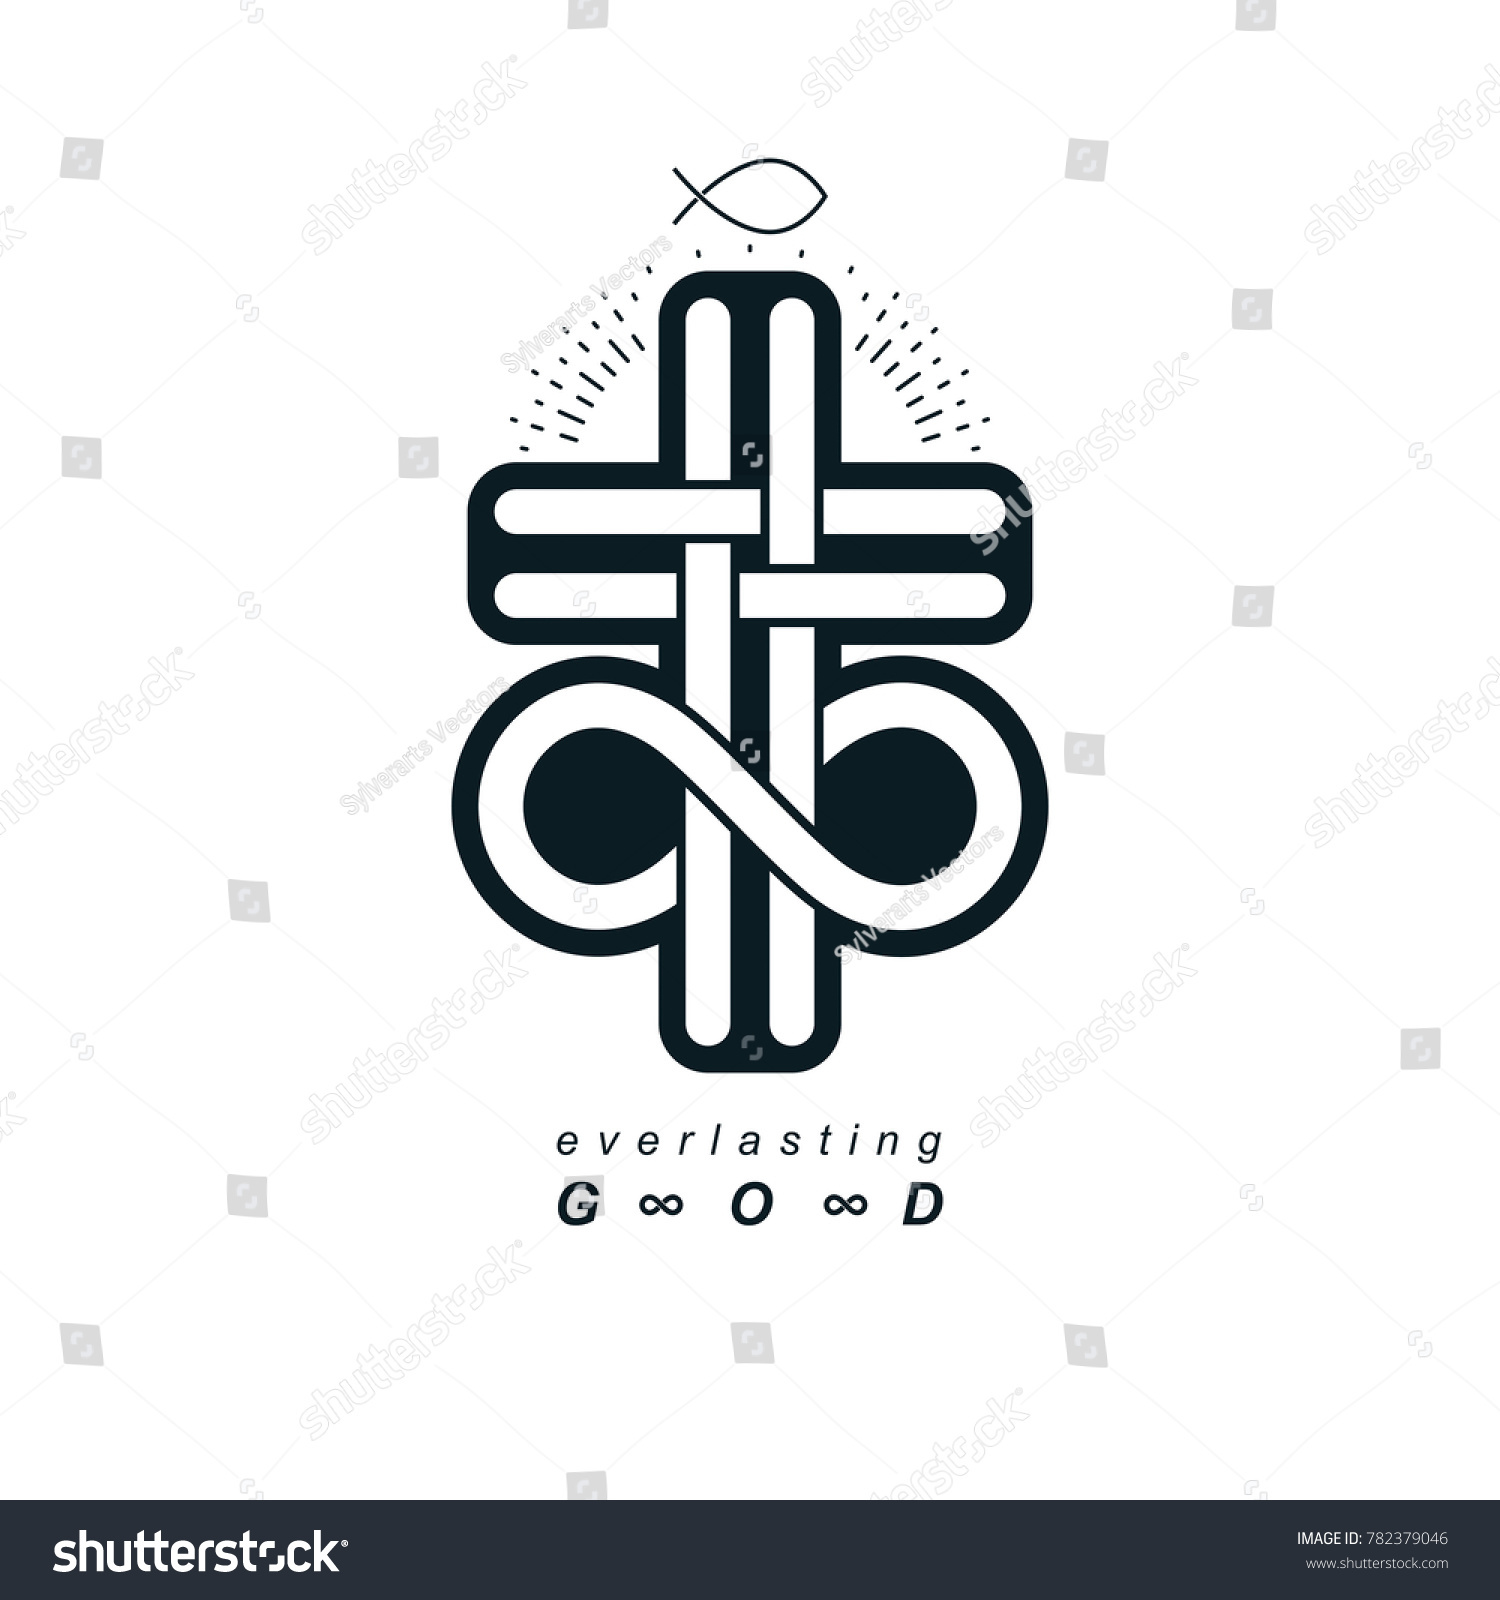 Everlasting christian belief god vector creative stock everlasting christian belief in god vector creative symbol design combined with infinity endless loop and biocorpaavc